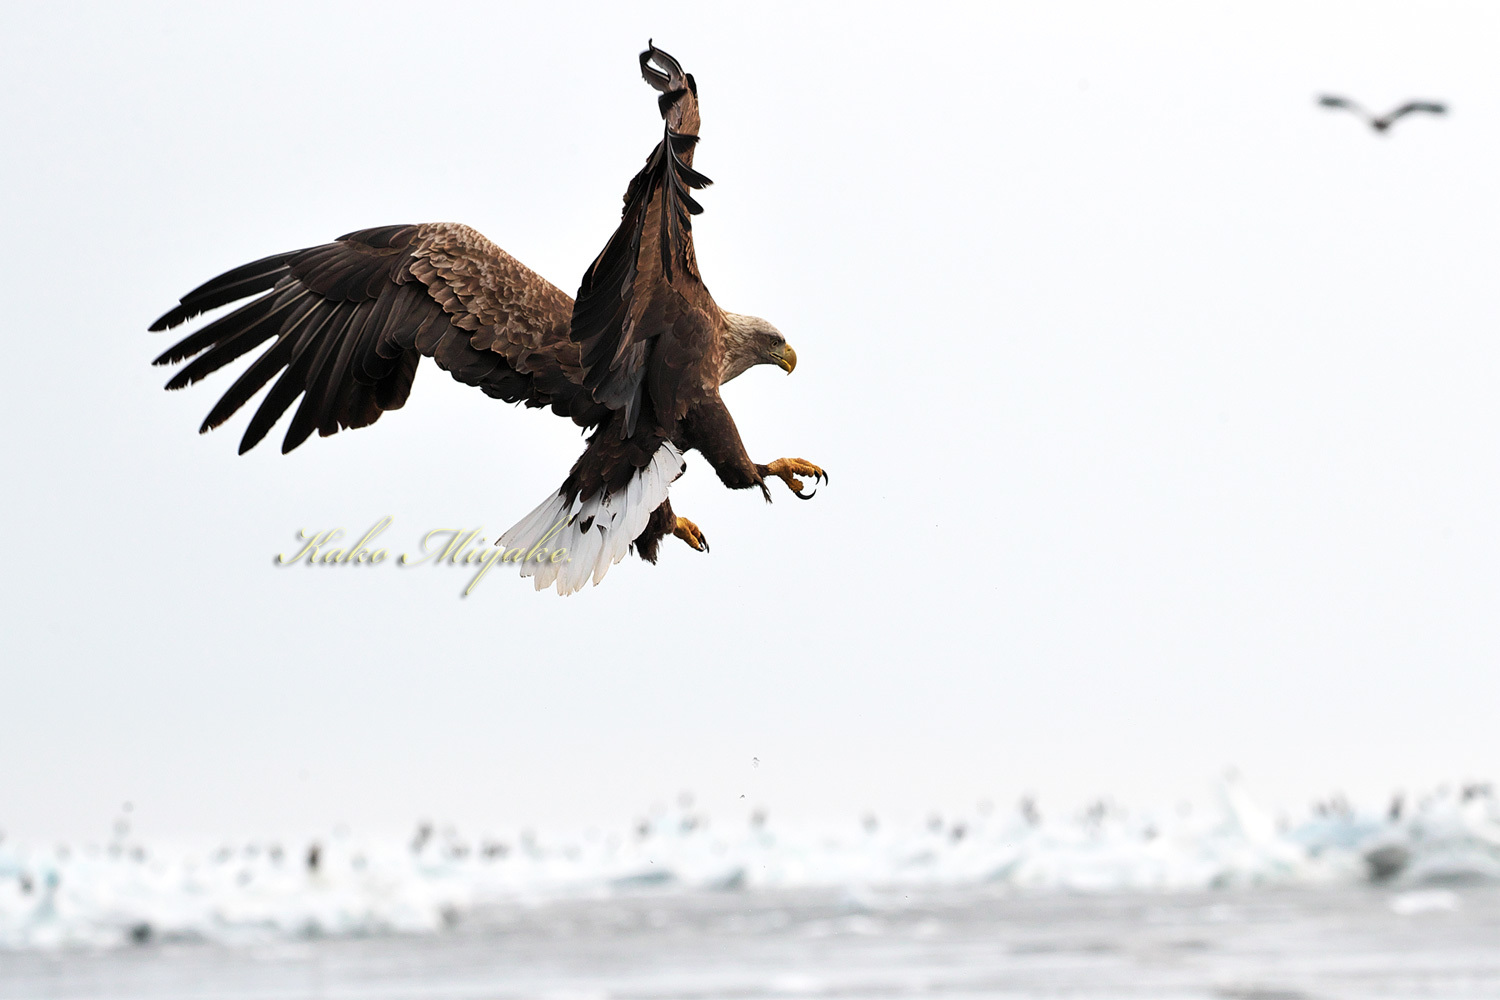 オジロワシ(White-tailed eagle)_d0013455_20521194.jpg